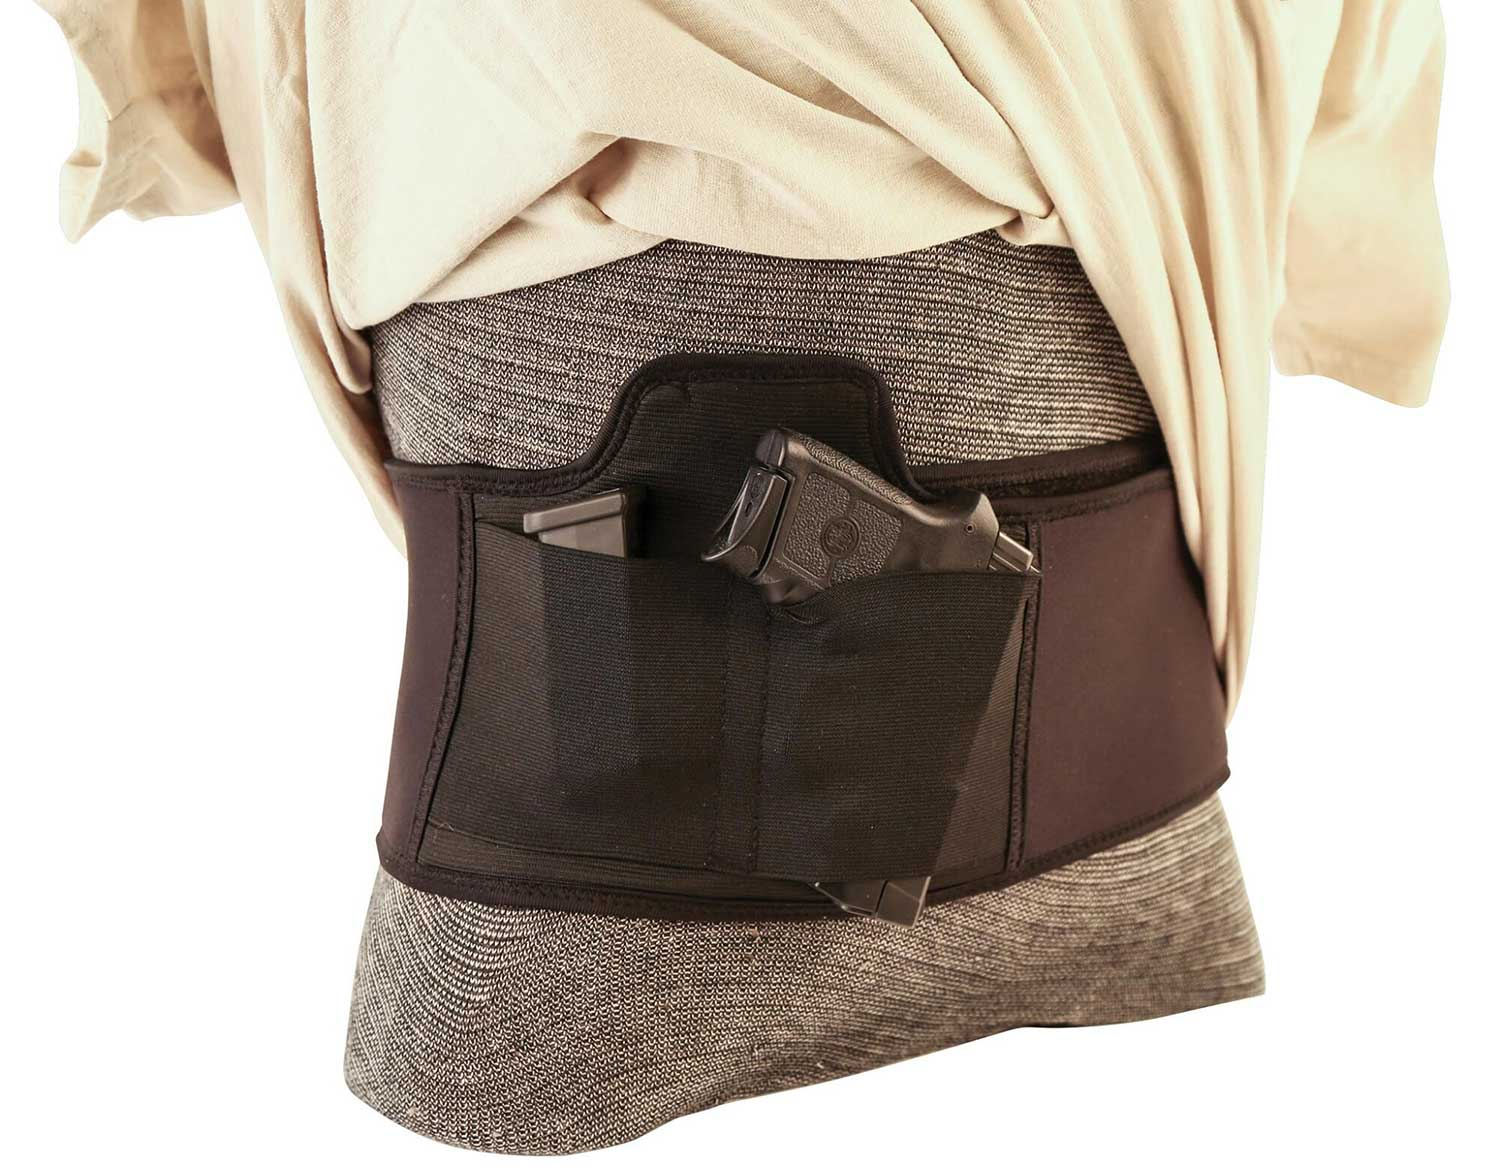 caldwell tac ops belly band holster